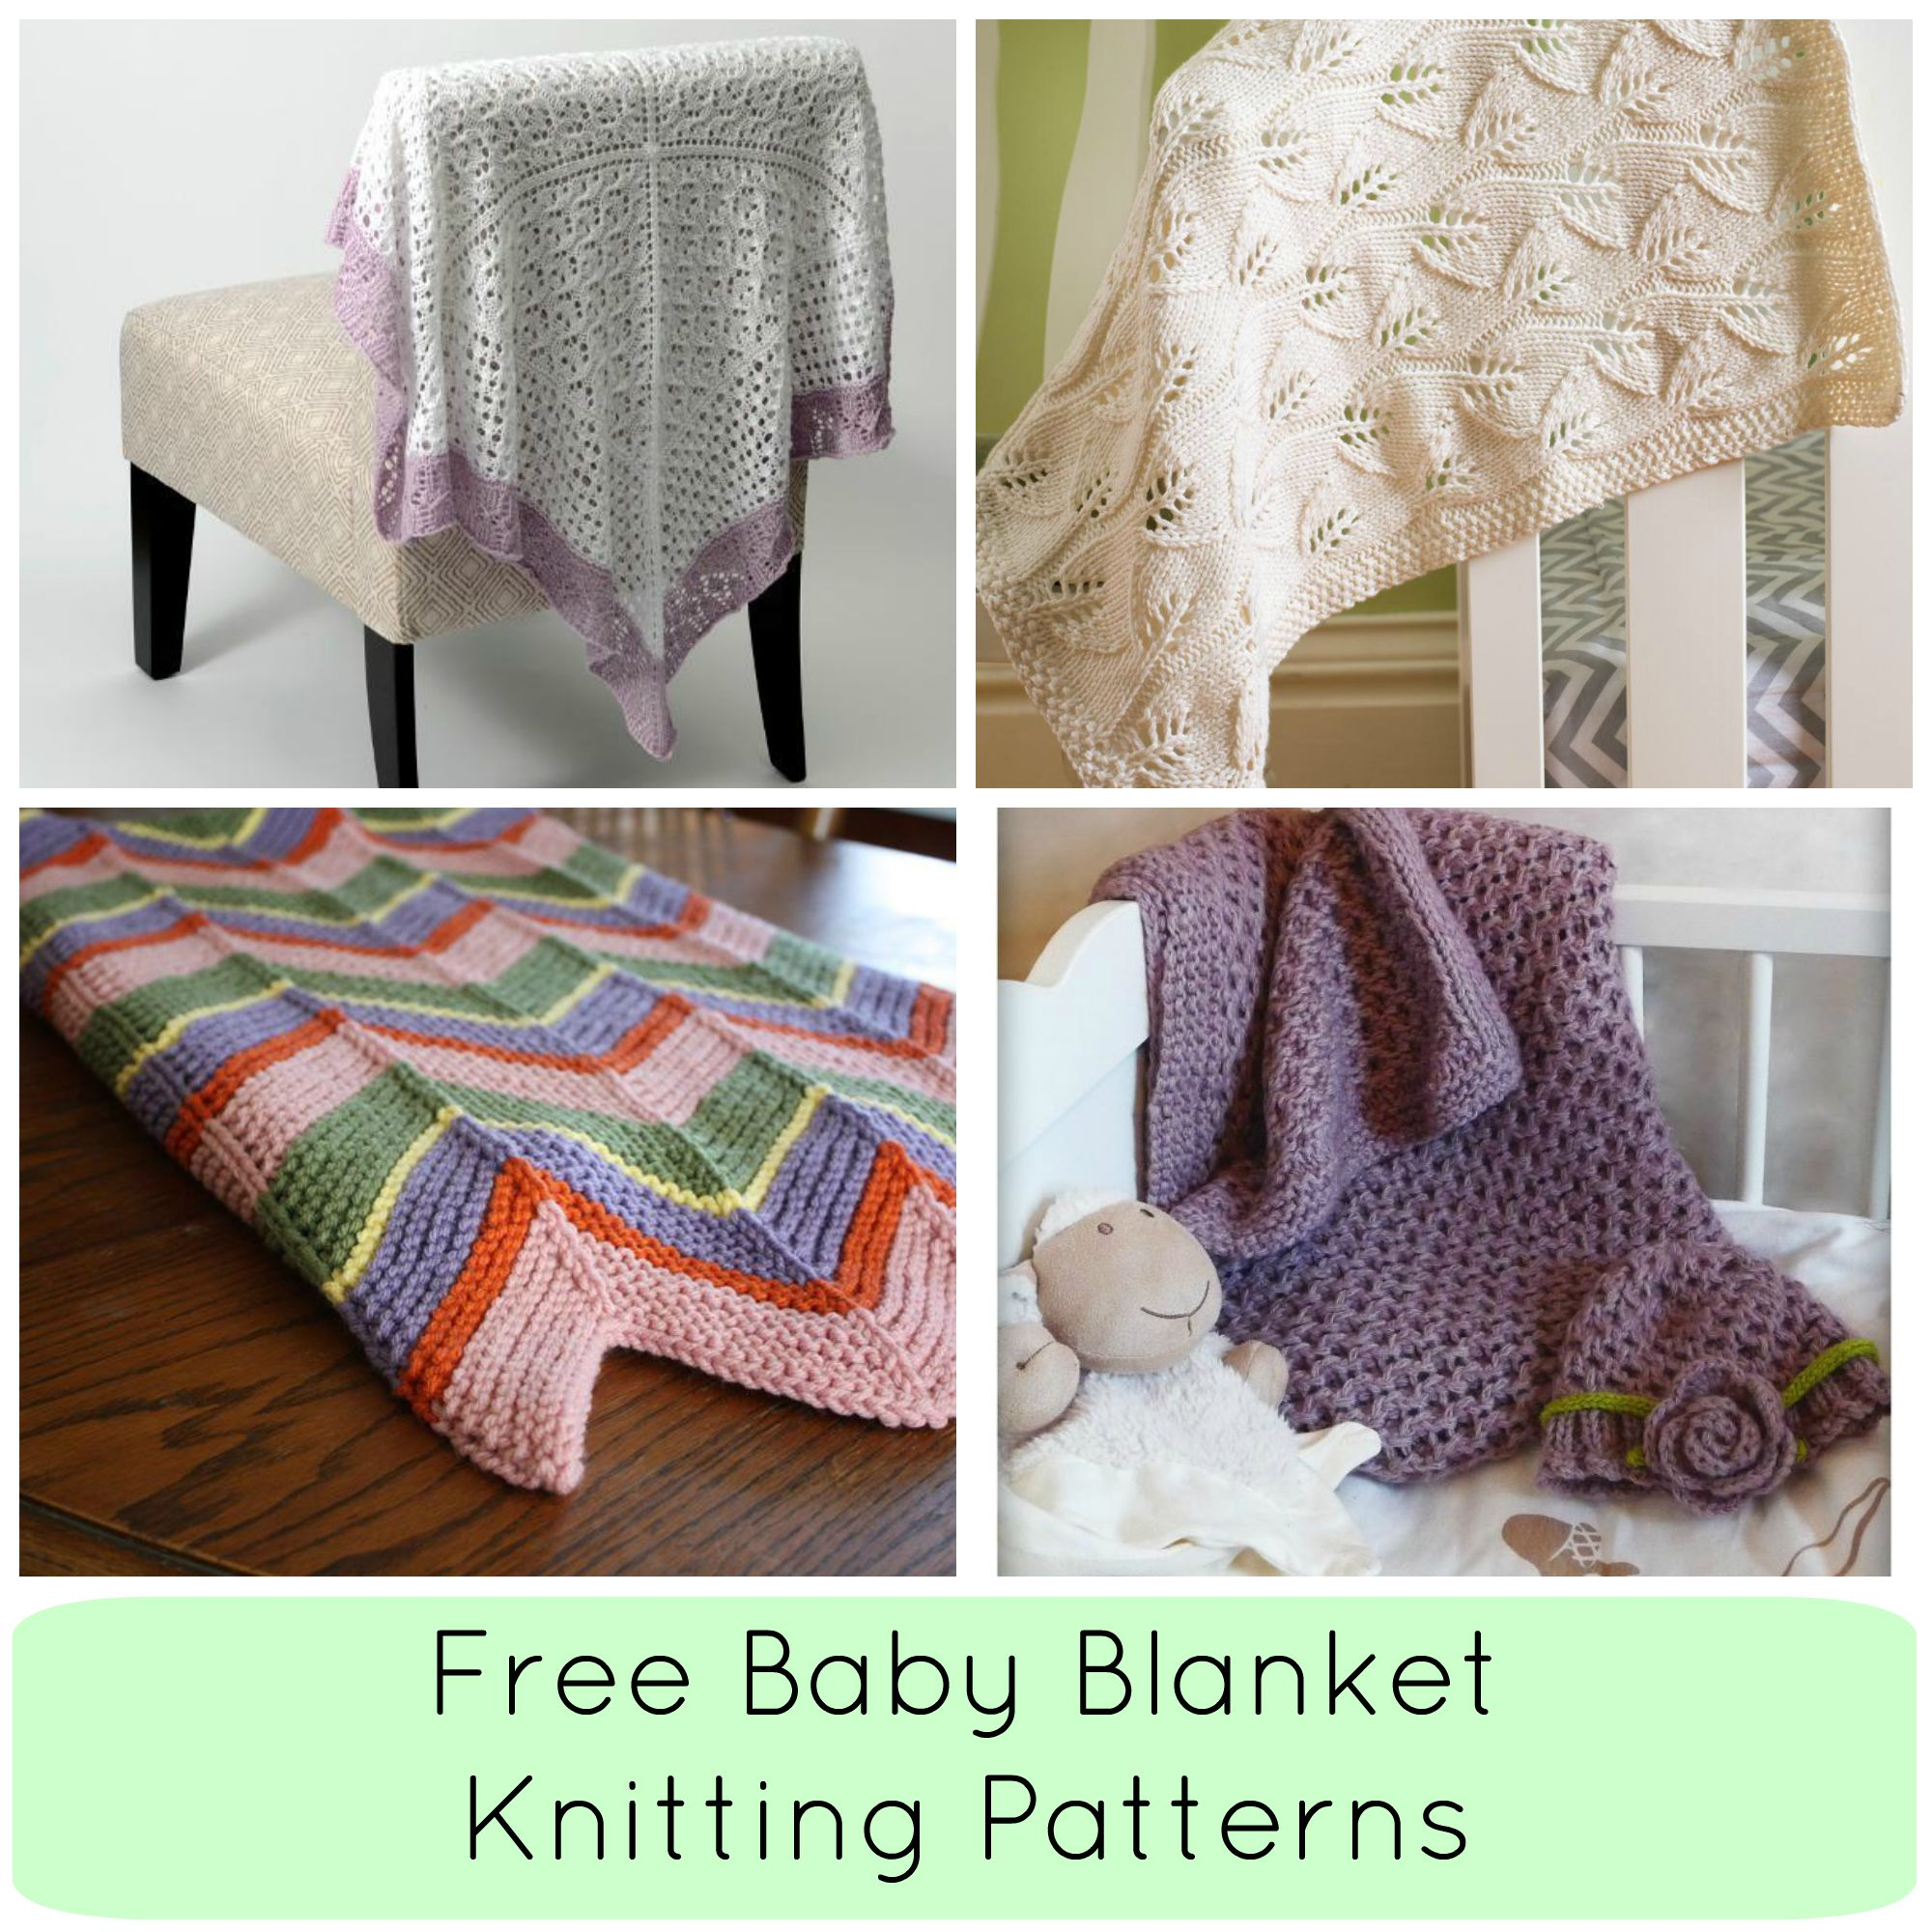 Knitting Patterns For Baby Blankets Easy 8 Free Ba Blanket Knitting Patterns Craftsy